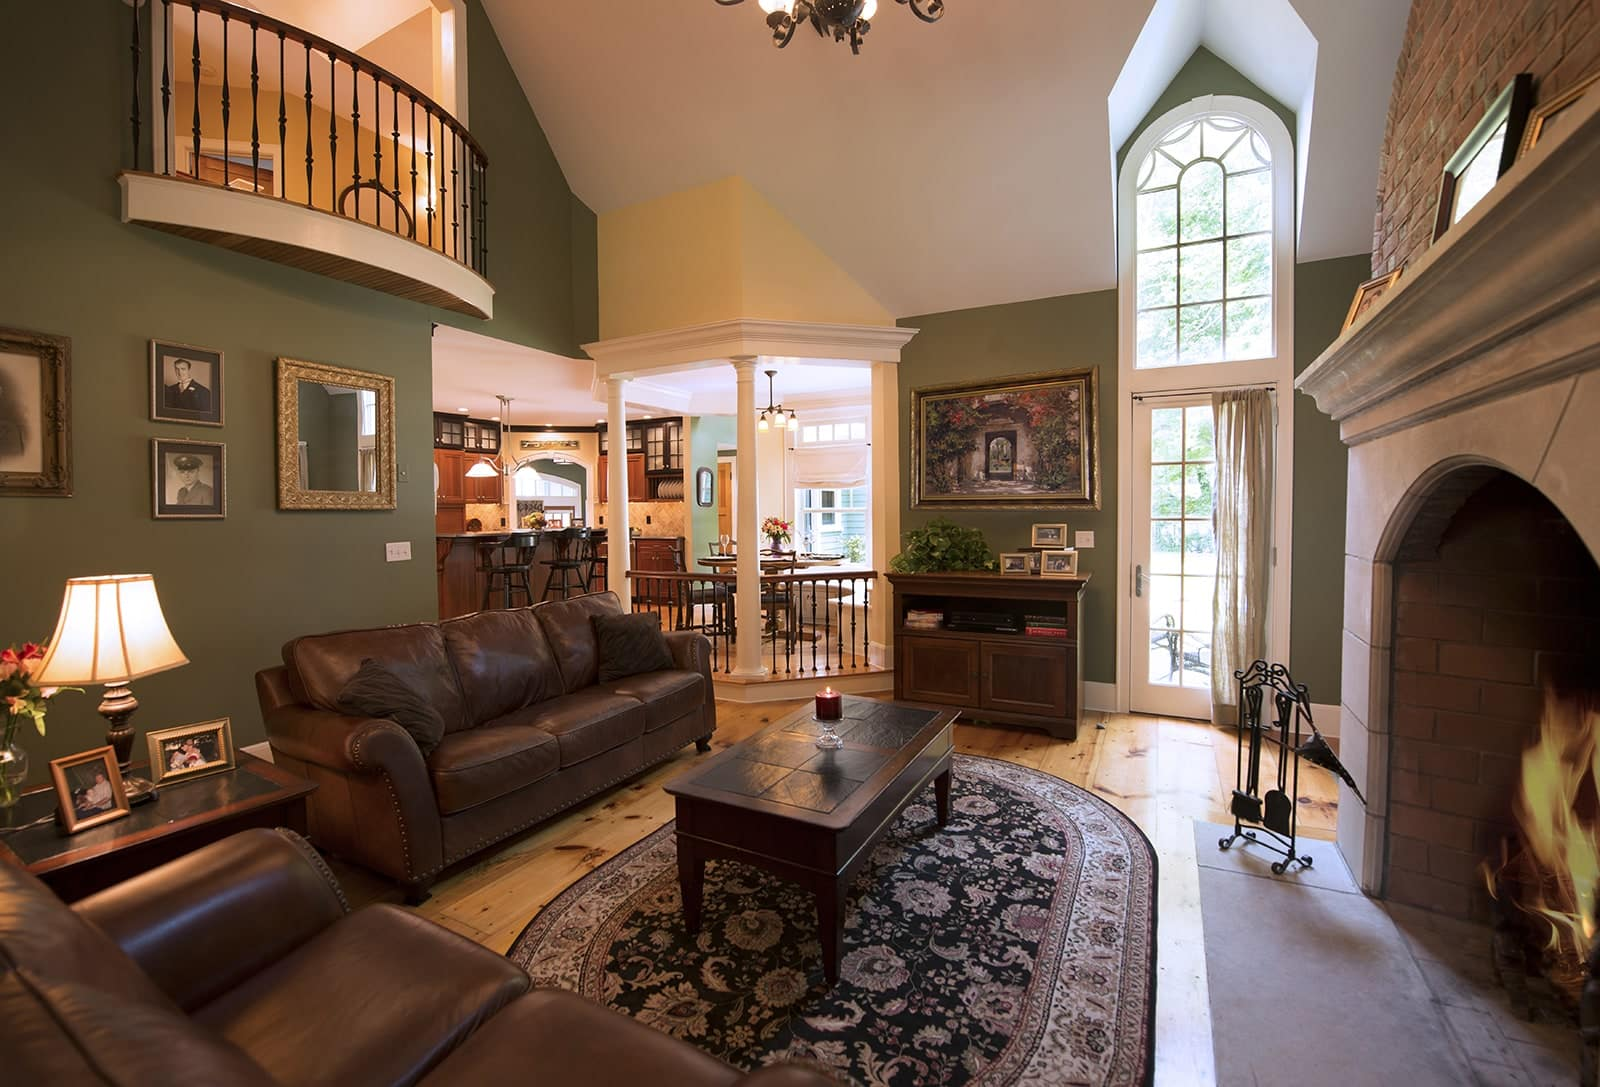 Eclectic Elegance Ipswich MA Living Room